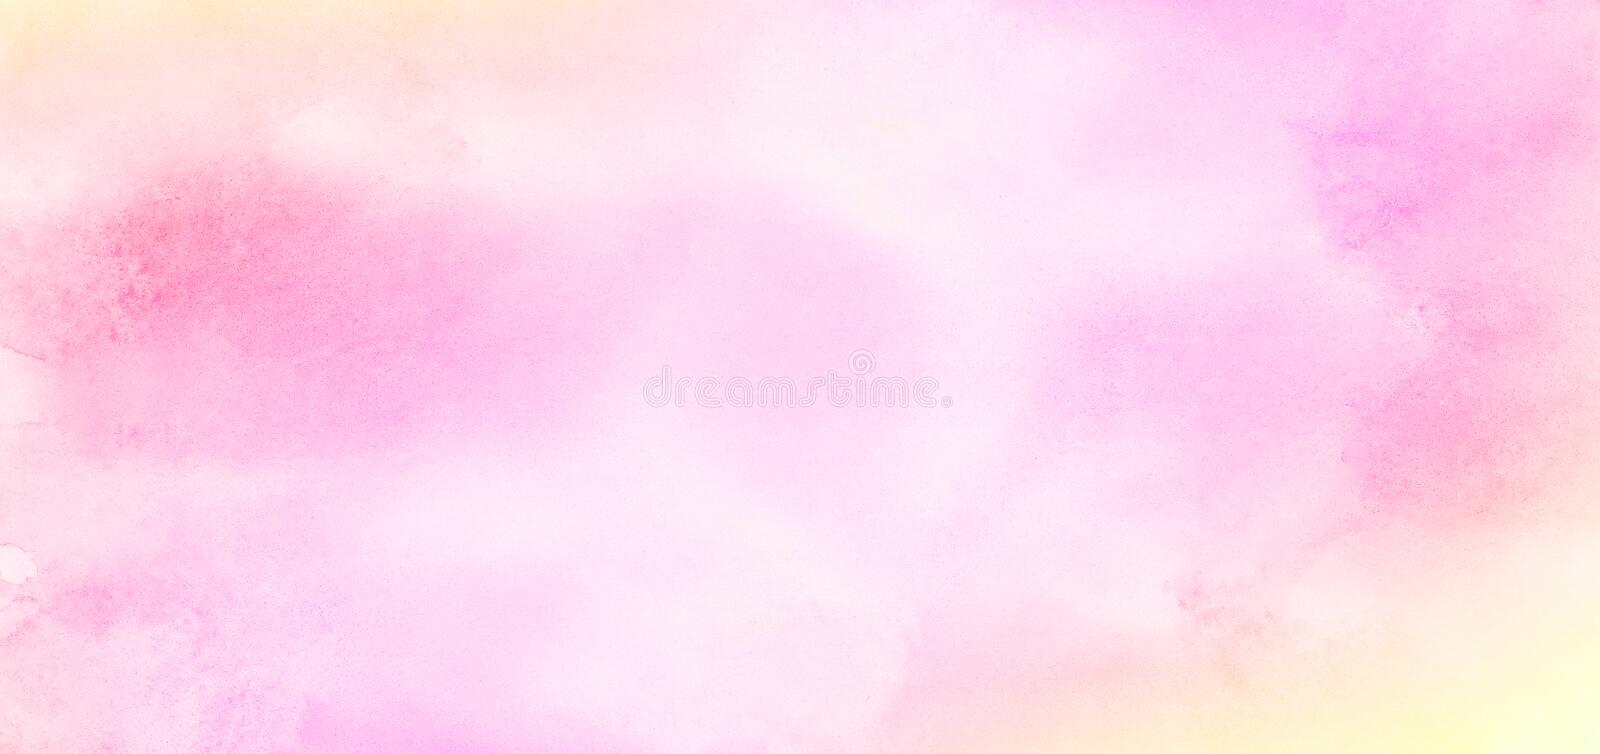 Smeared bright ink light pink color shades gradient illustration on textured paper background. Subtle aquarelle painted magenta watercolor canvas for stain royalty free stock photos